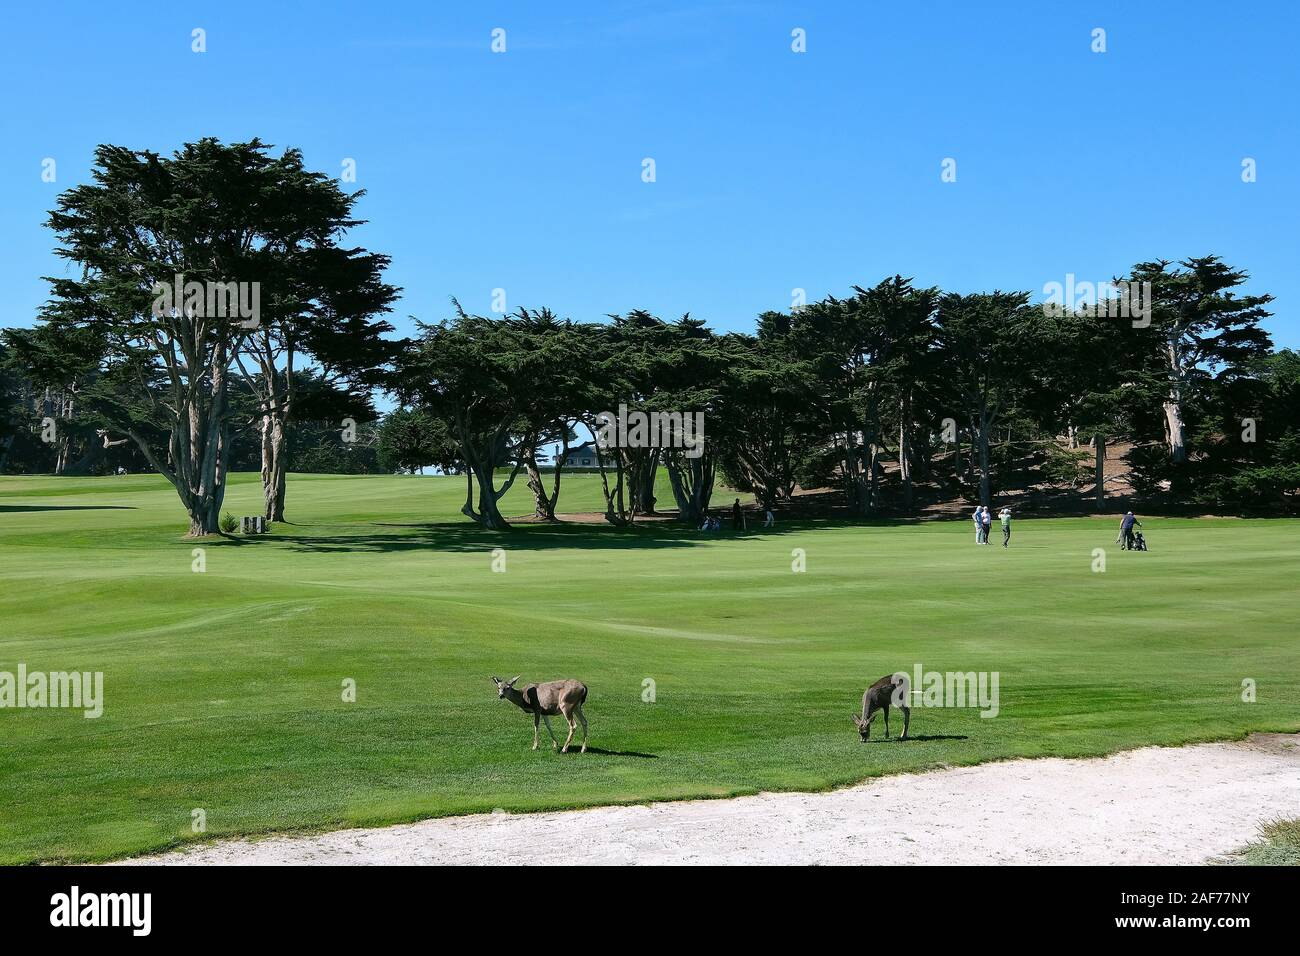 Deer on a golf course on 17-Mile Drive, paid coastal road on the Monterey Peninsula between Carmel-by-the-Sea and Monterey, California, USA Stock Photo